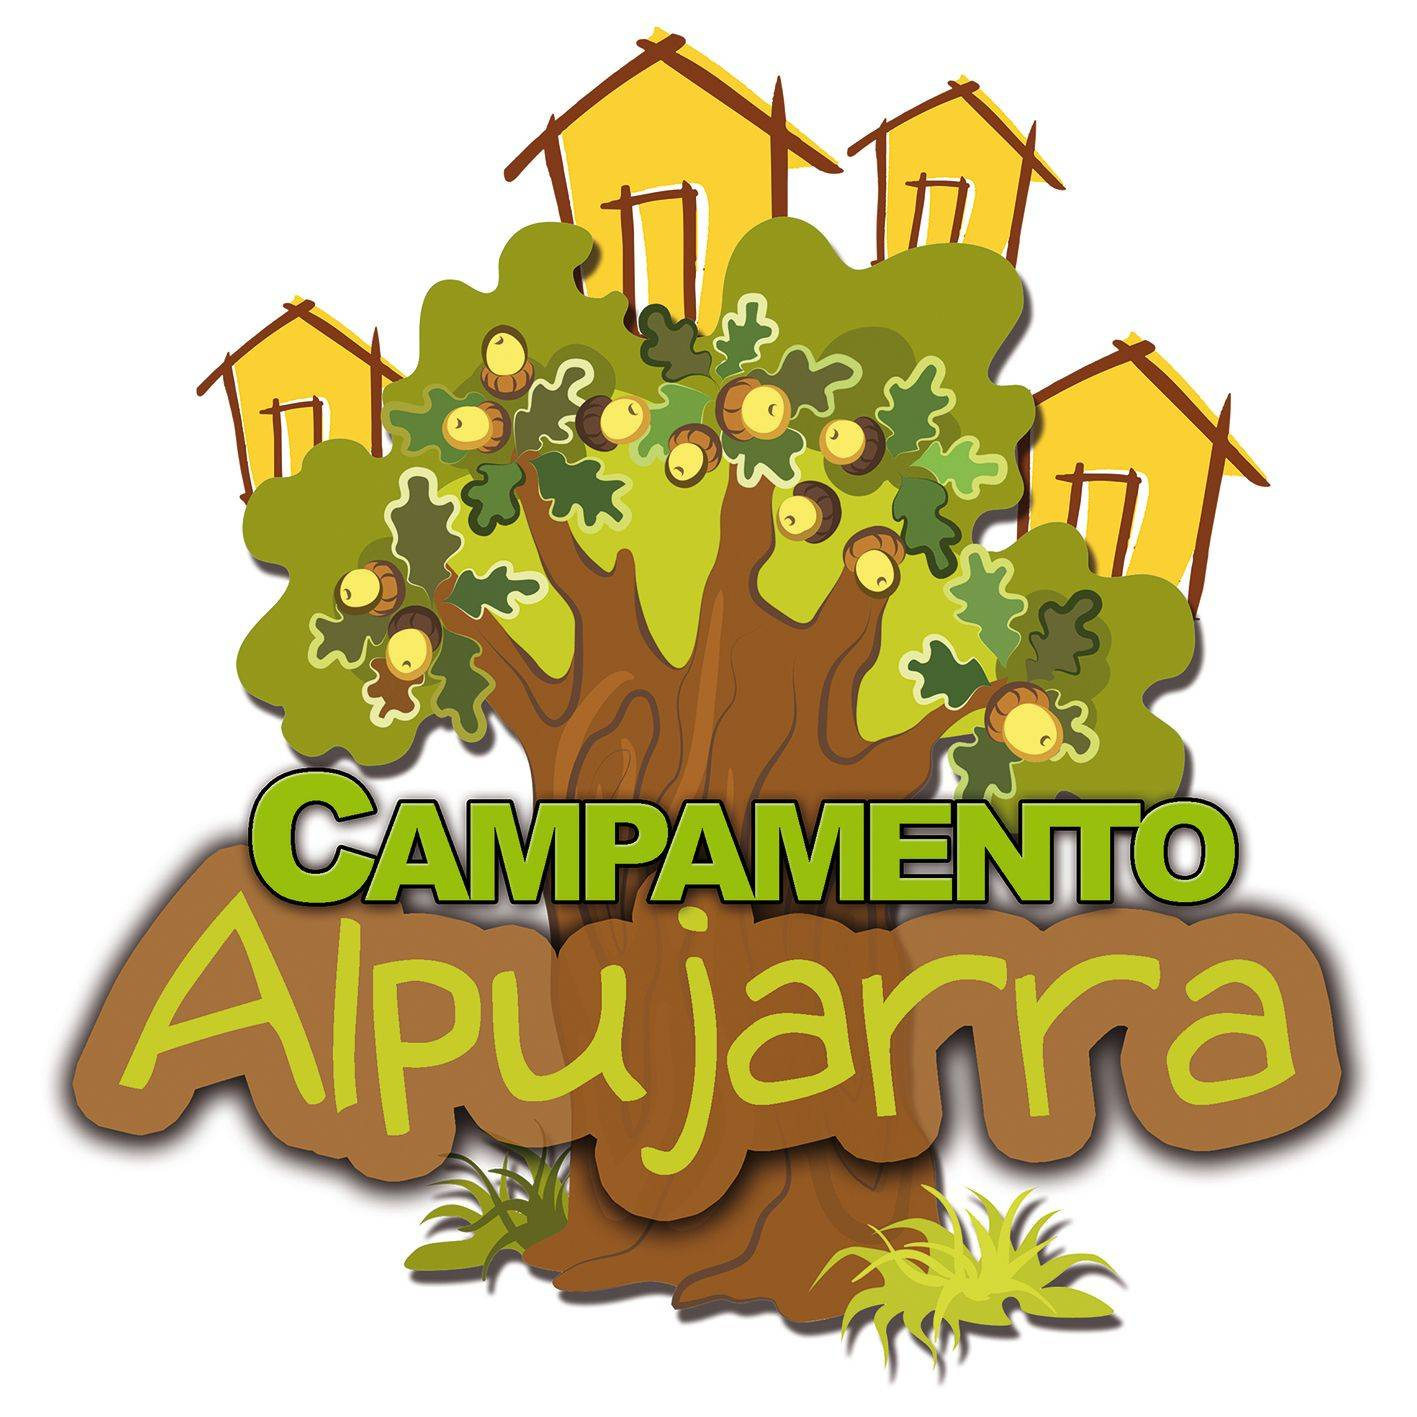 LOGO CAMPA SEP13